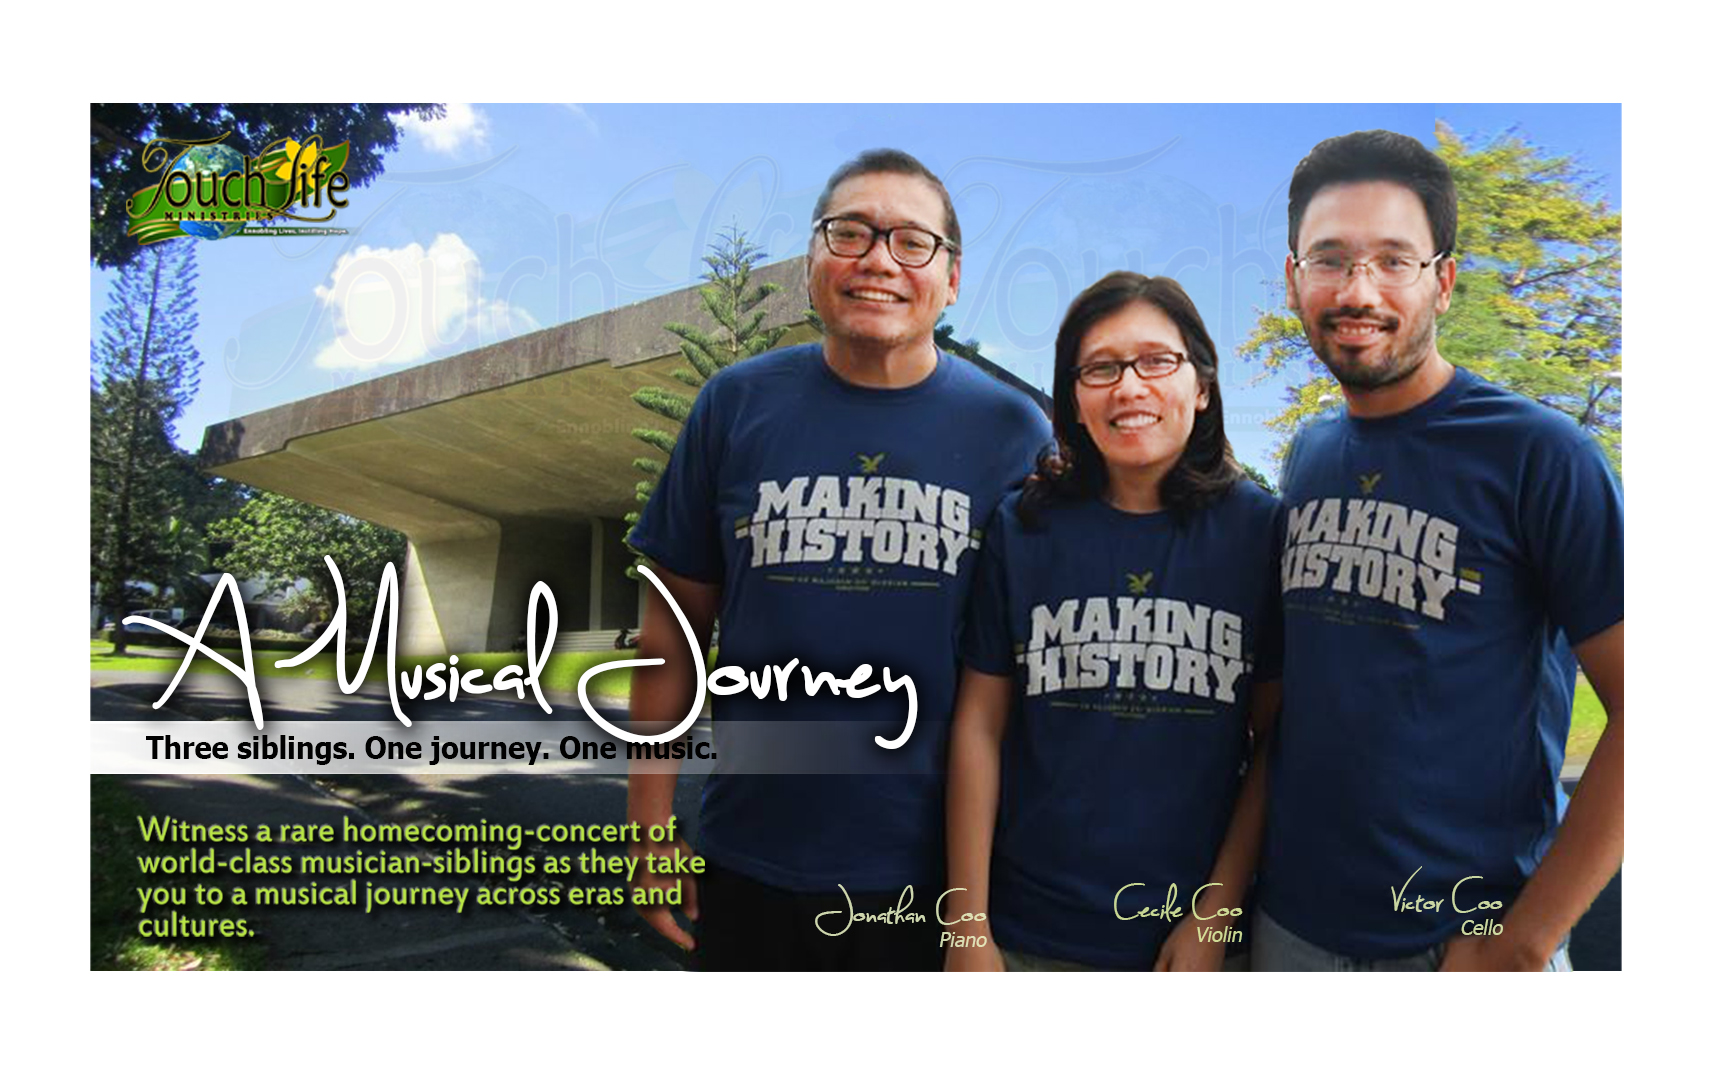 A Musical Journey - Three siblings. One Journey. One Music.